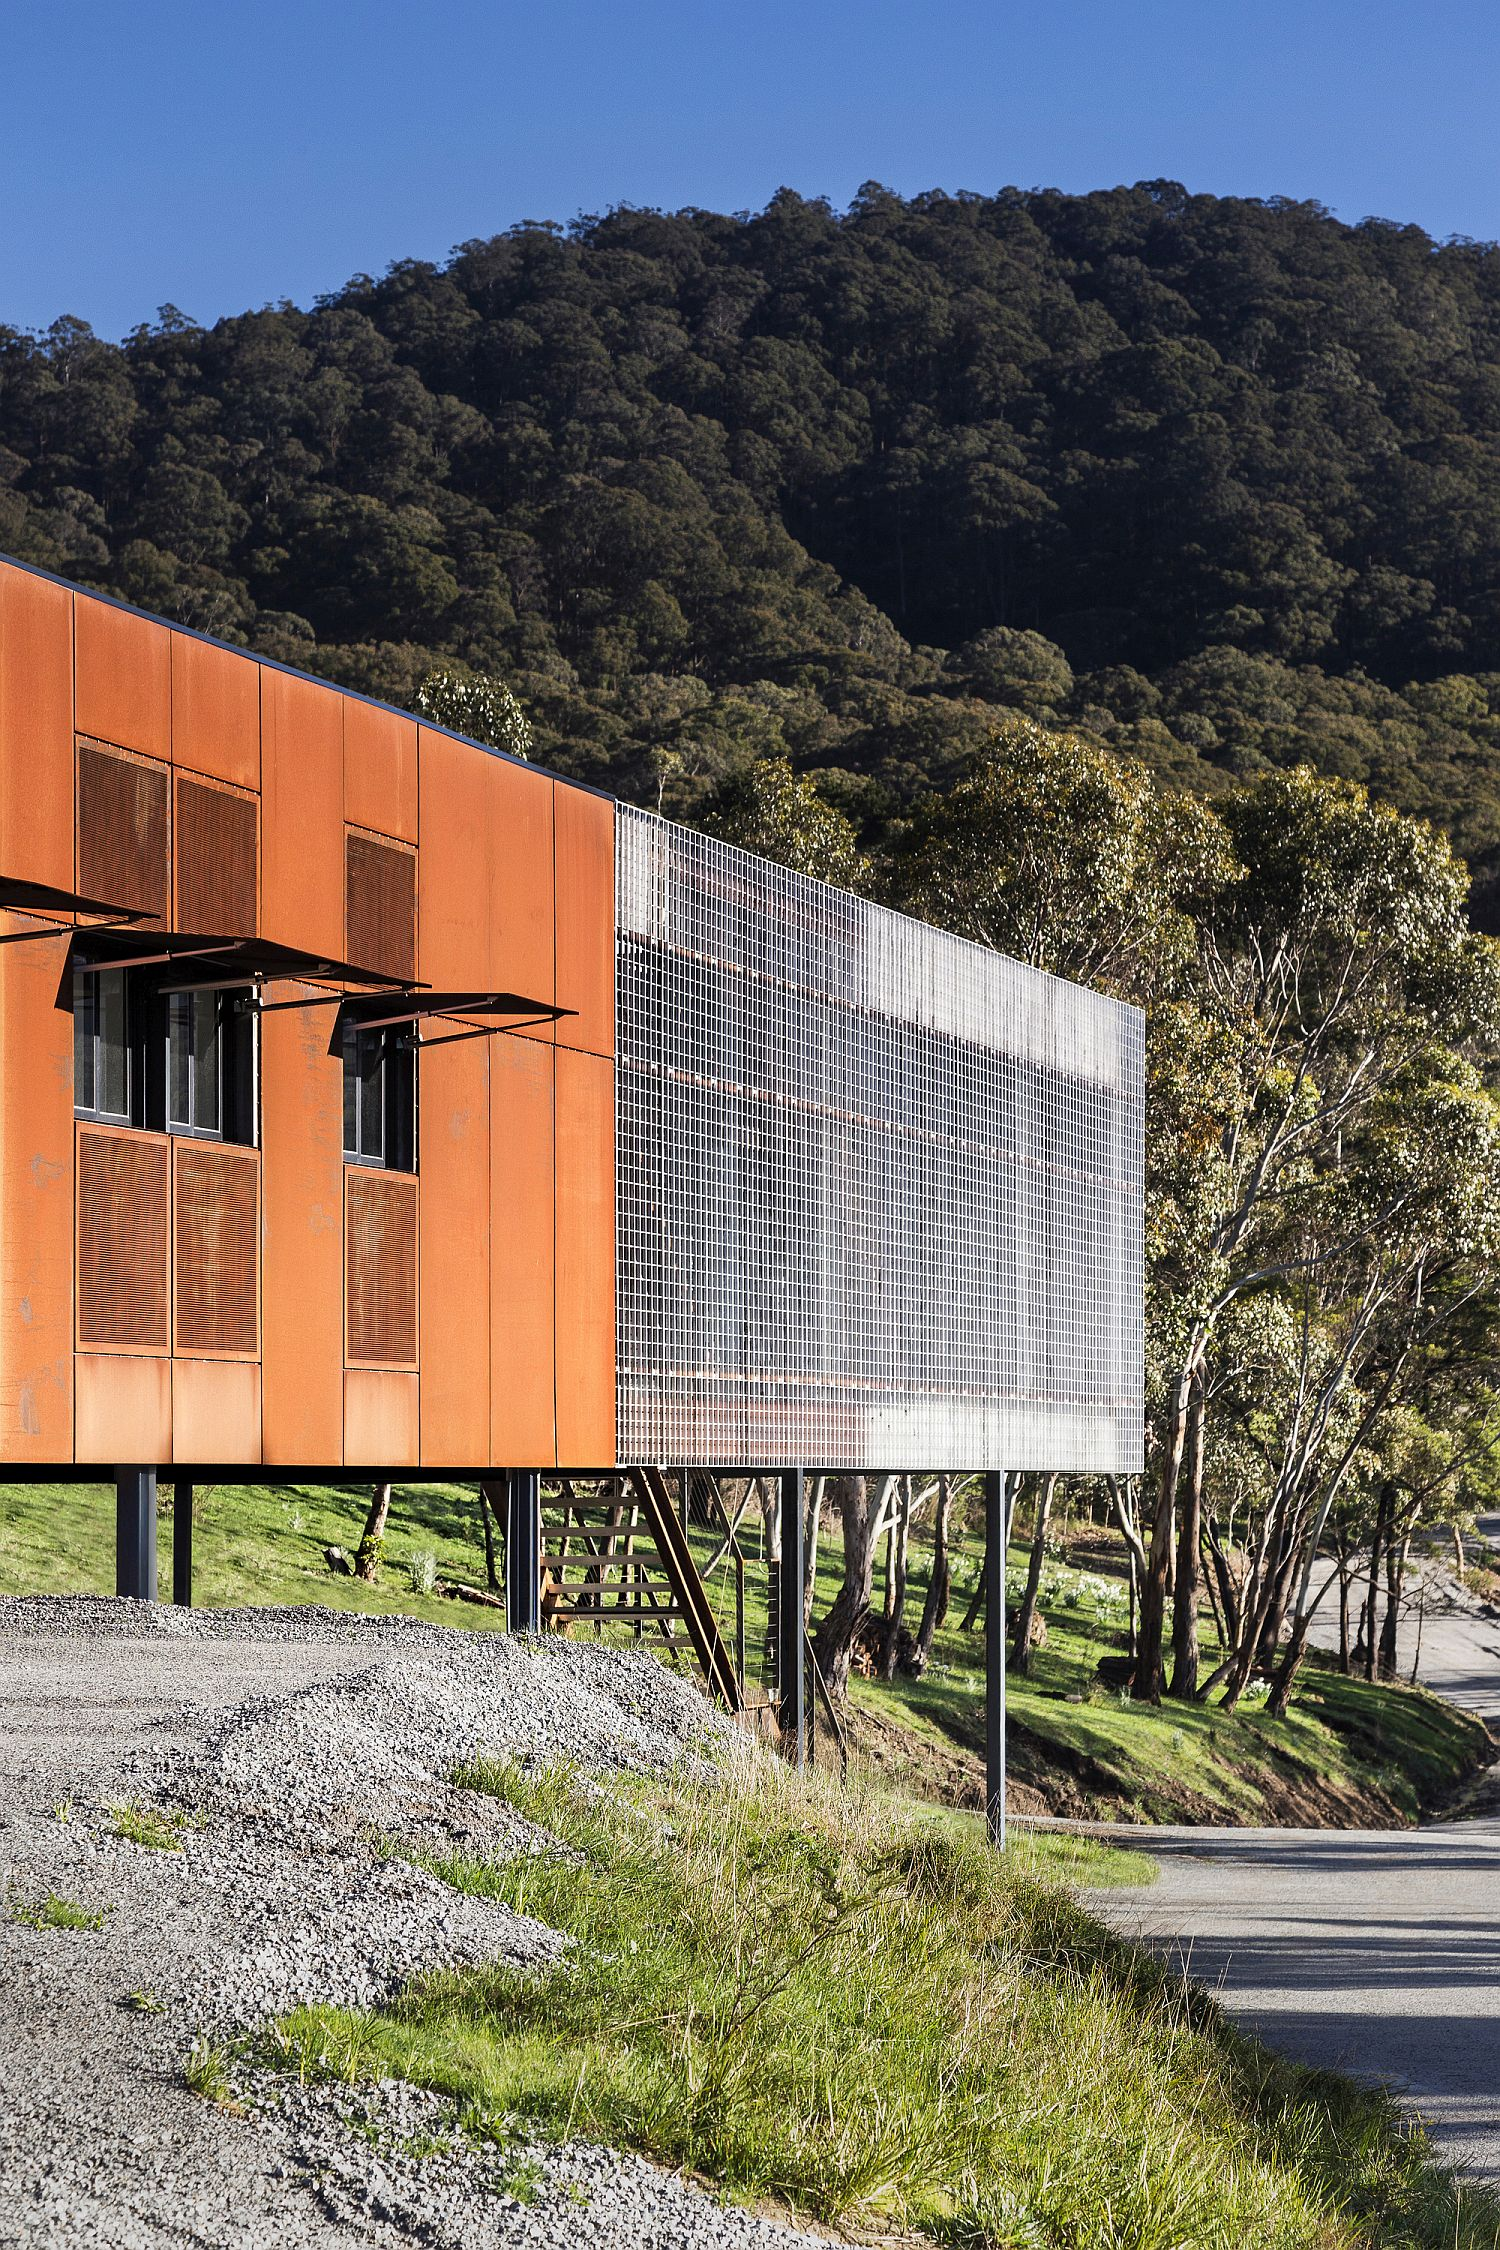 Unique and metallic exterior of the bushland home protects it from harsh weather and bushfires